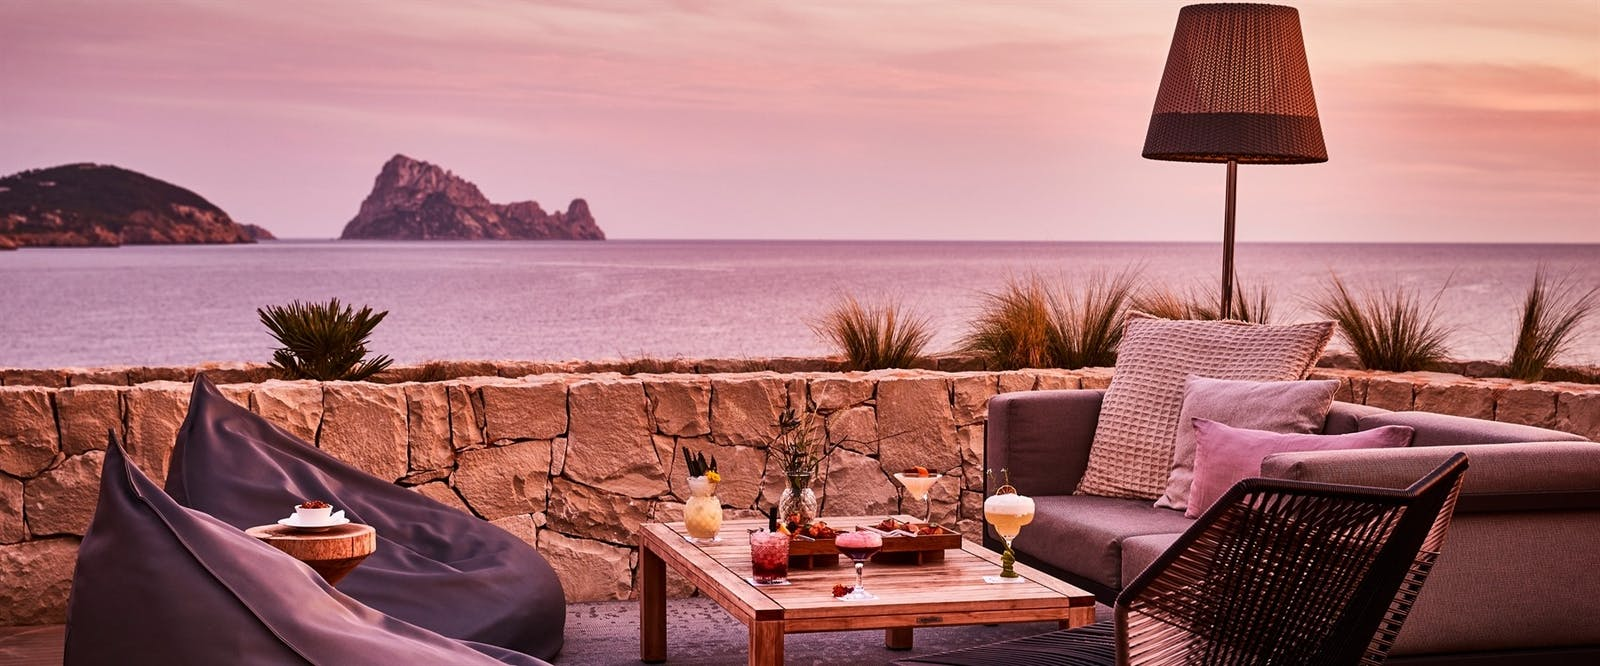 Pershing Yacht Terrace at Seven Pines Resort, Ibiza, Spain